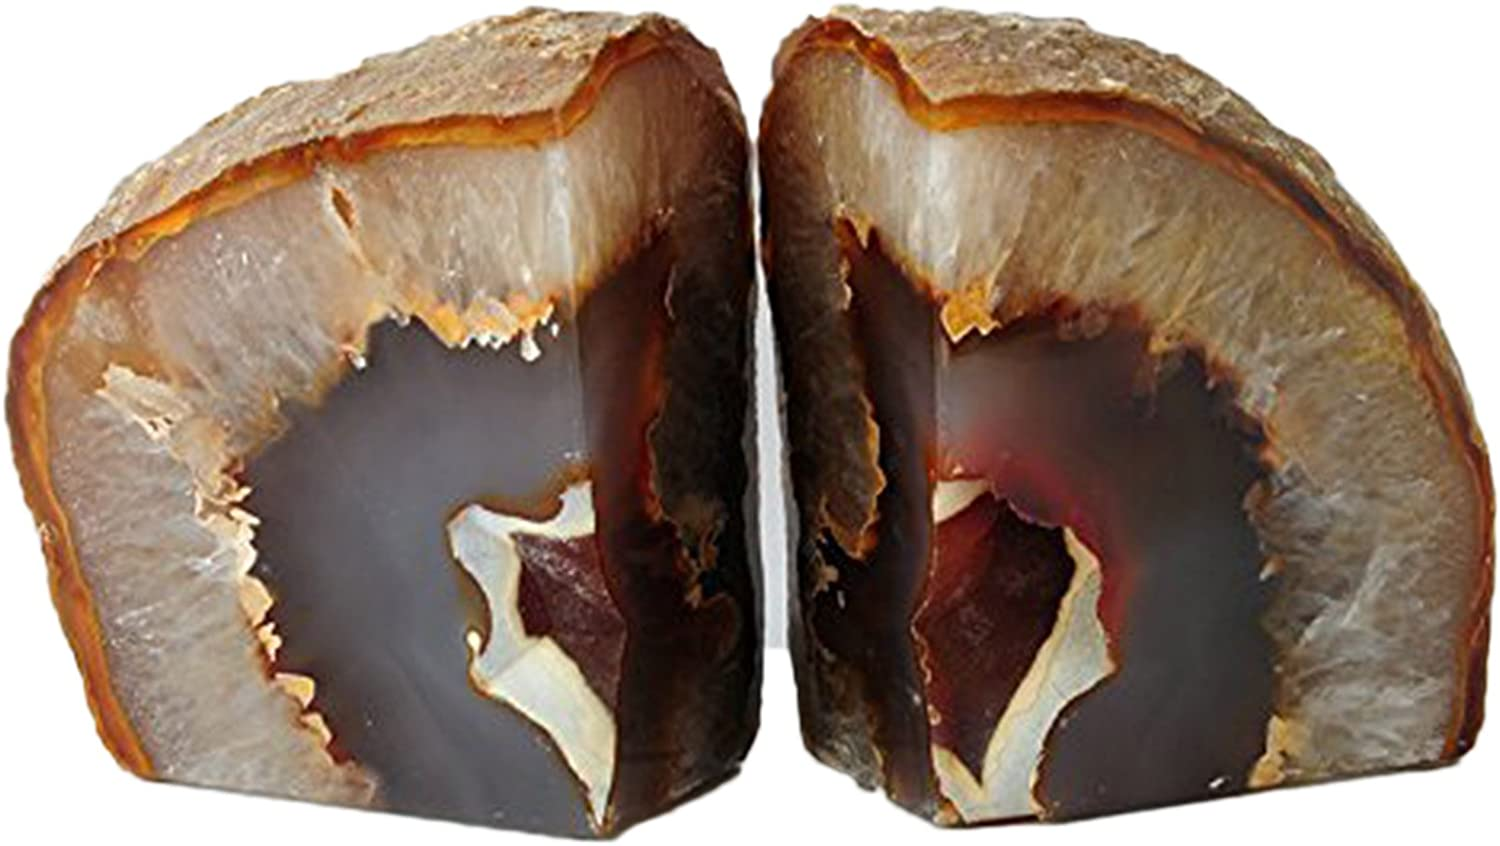 AMOYSTONE 1 Pair Heavy Duty Natural Agate Bookends for Home and Office Decor 6-8 lbs with Non-Slip mat